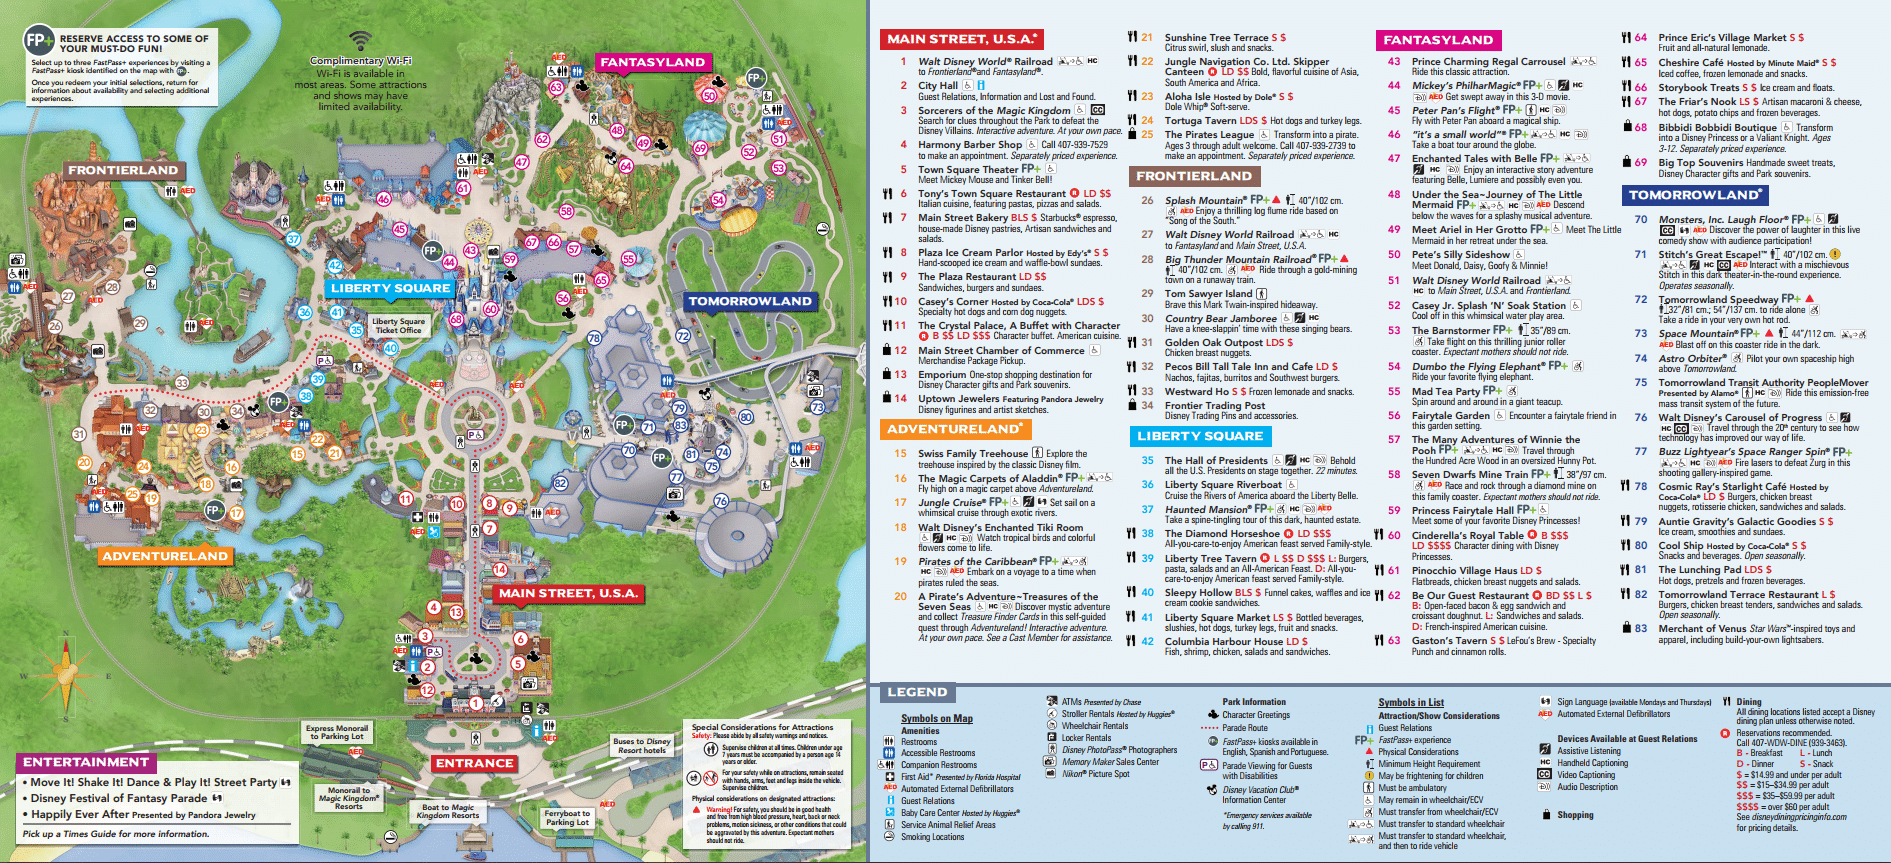 Adaptable image with regard to magic kingdom printable map